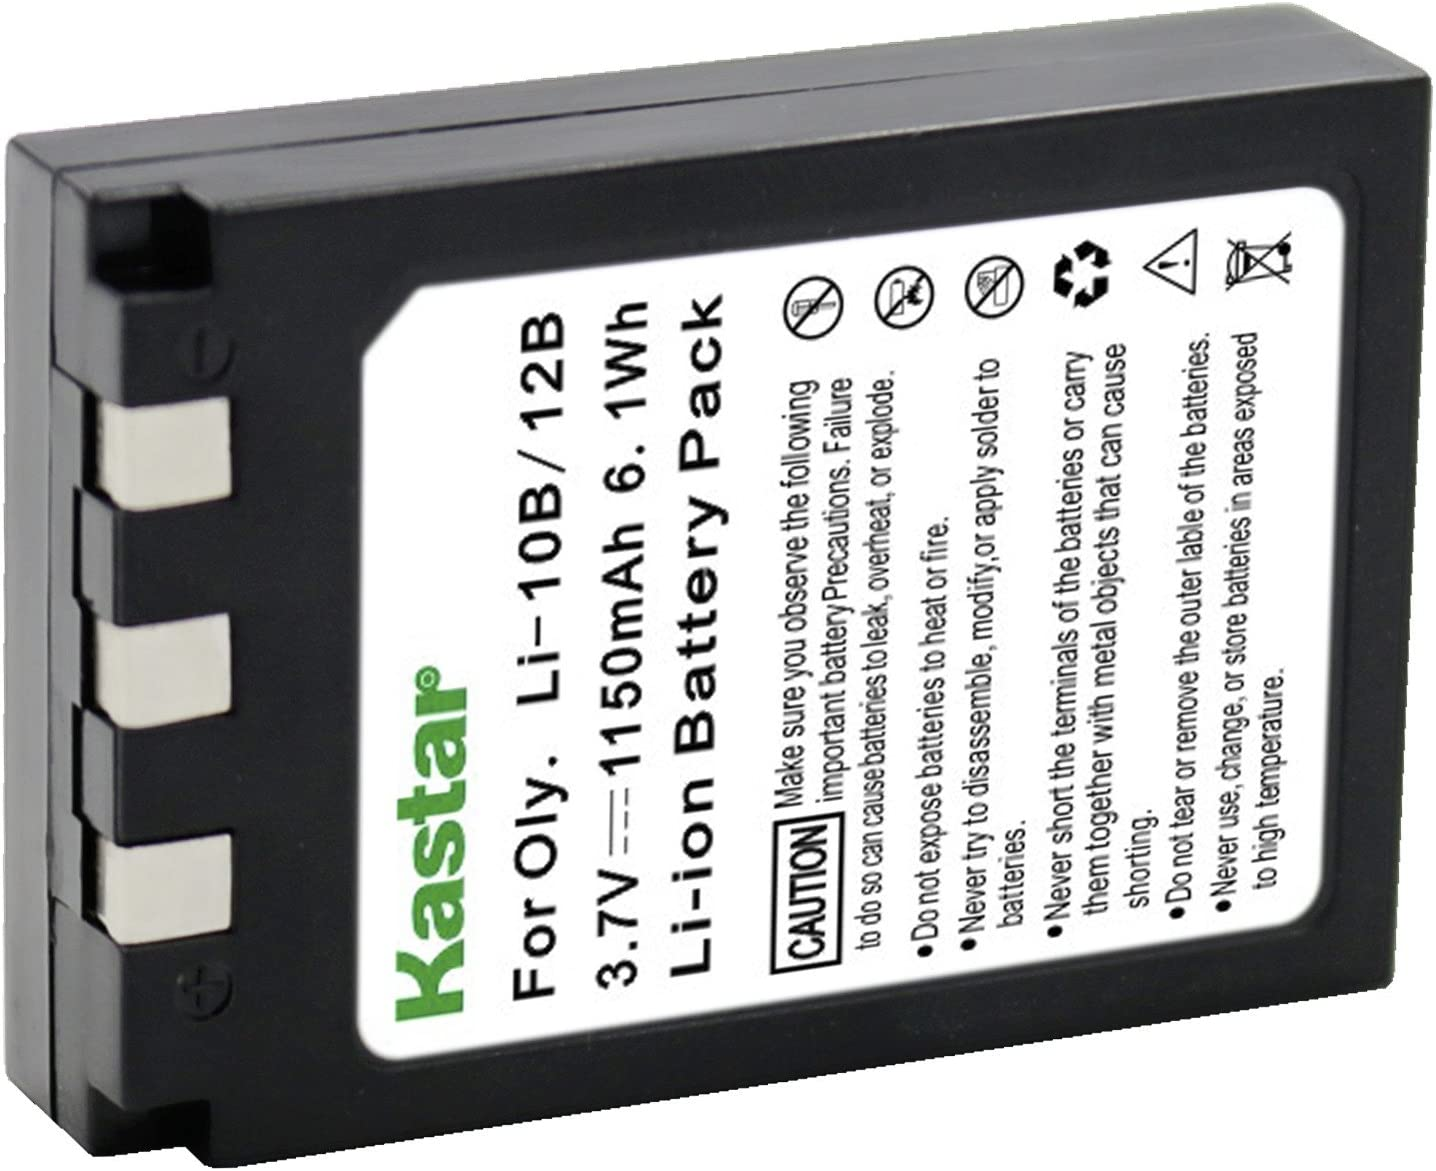 Battery for OLYMPUS Camedia X-3 u 800 IR-500 Stylus 500 Stylus 300 Digital 410